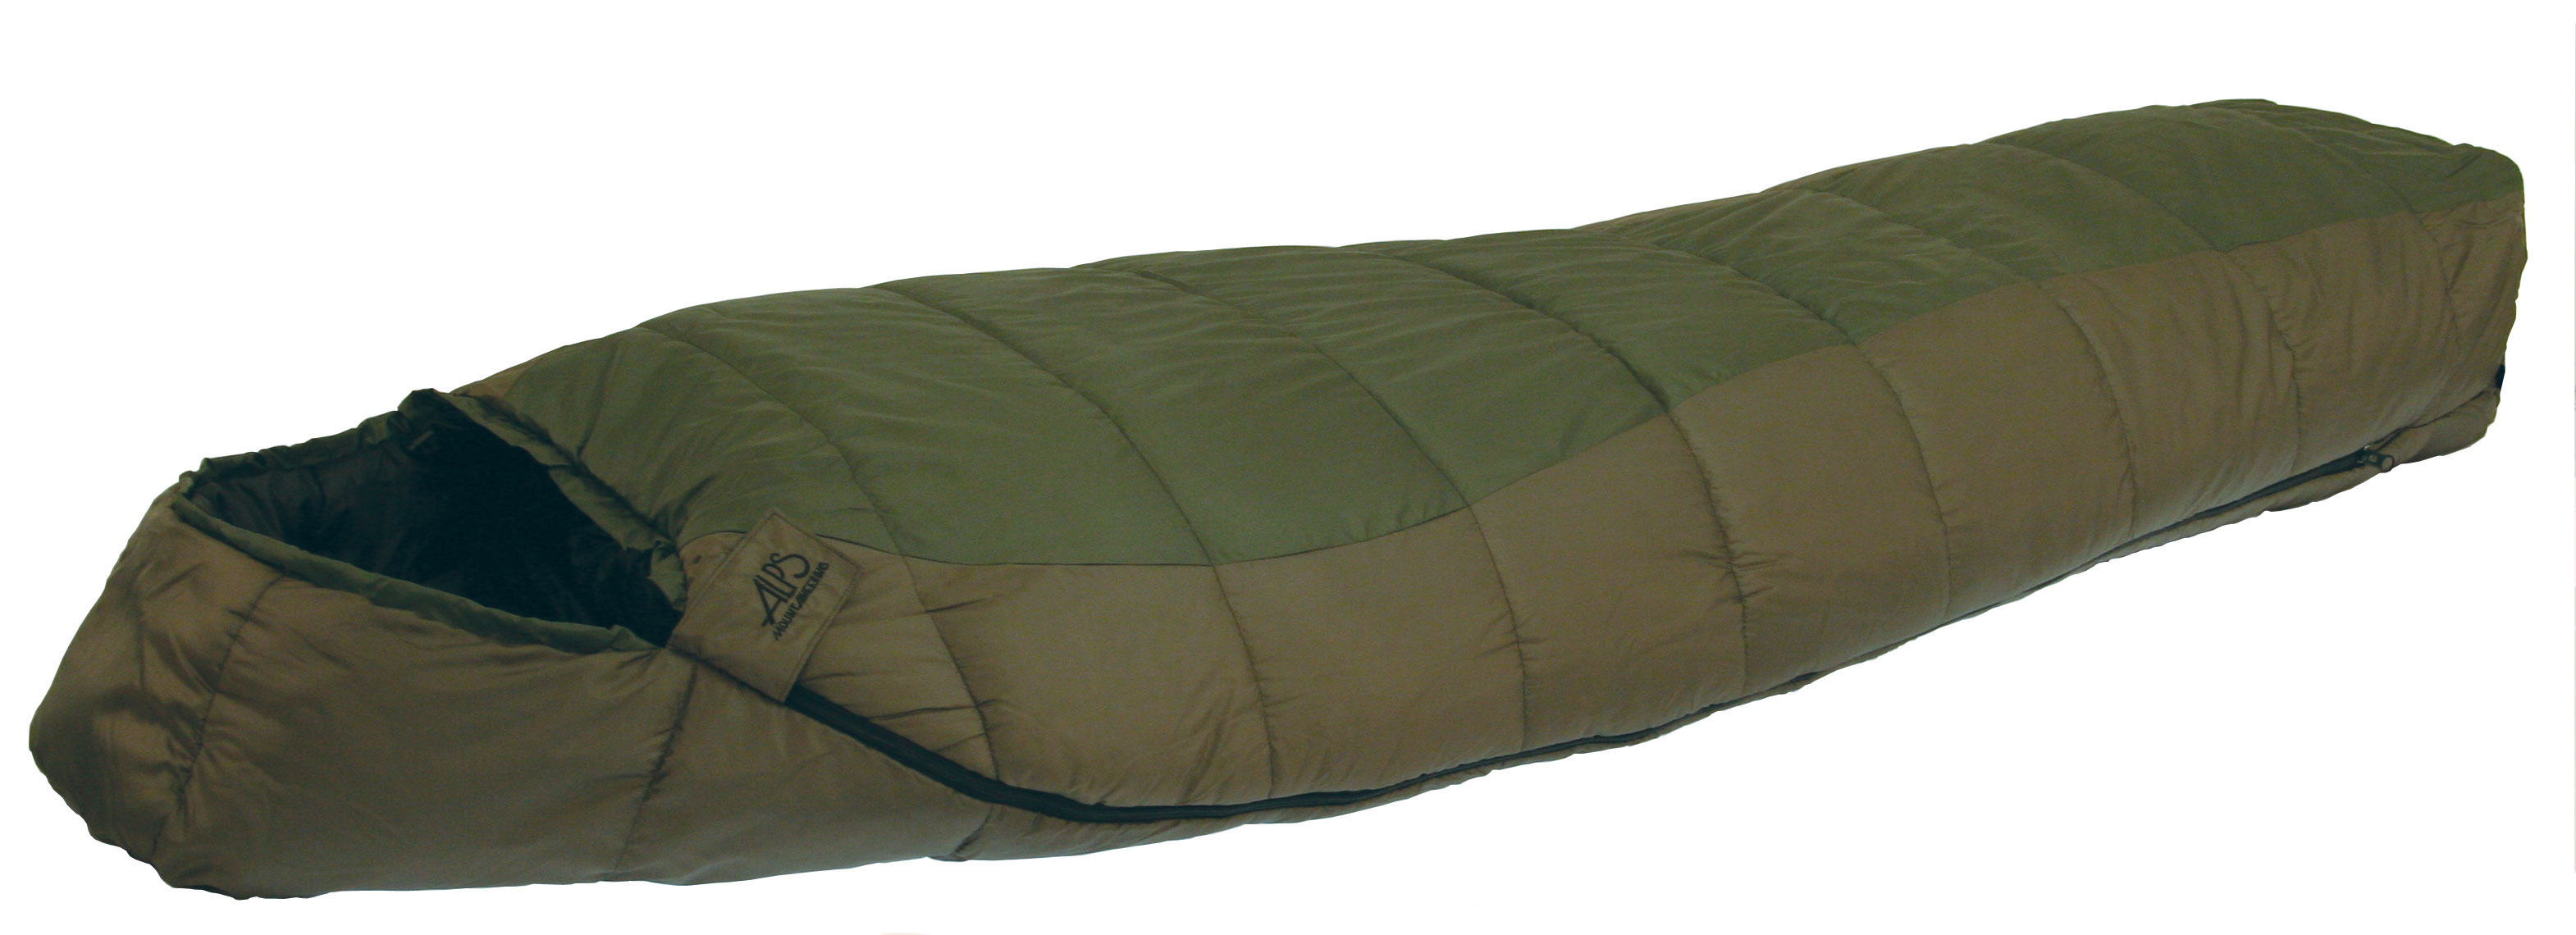 "Camp and Hike The Crescent Lake series sleeping bags are made with Techloft+ insulation. Techloft+ Insulation consists of multi-hole staple-length micro-denier fibers that have a siliconized finish for maximum insulation, loft, and compactness. The Crescent Lake uses a 2-layer offset construction, sometimes called a ""bag within a bag."" The contoured hood and mummy shape helps seal up your warmth and keep you warmer. The Crescent Lake is a great backpacking sleeping bag to take along on your hikes that won't take up all the space in your pack.Key Features of the Alps Crescent Lake 20 Long Sleeping Bag: TechLoft+ - 2 Layer Offset Insulated Chest Baffle Zipper Baffle Contoured Hood Standard Stuff Sack Included Outer Material: 210T Polyester Outer Color: Green/Clay Liner Material: 210T Polyester Liner Color: Black Shape: Mummy Zipper: #8 Separating Length: Long Dimensions: 34""x 86"" Fill Weight: 44 oz Total Weight: 4 lb 6 oz - $59.95"